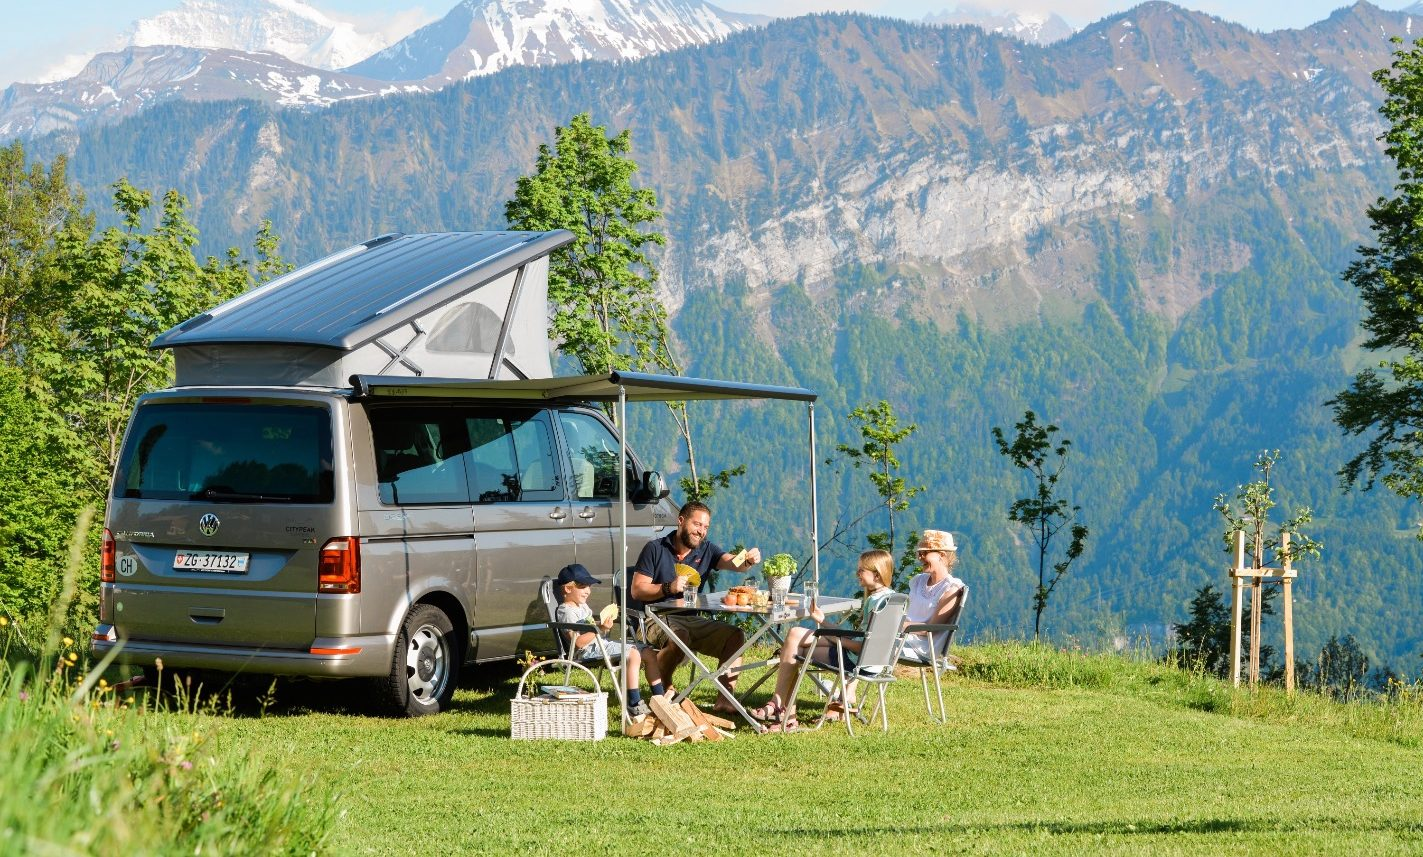 campervan rental switzerland, family camping, bernese oberland